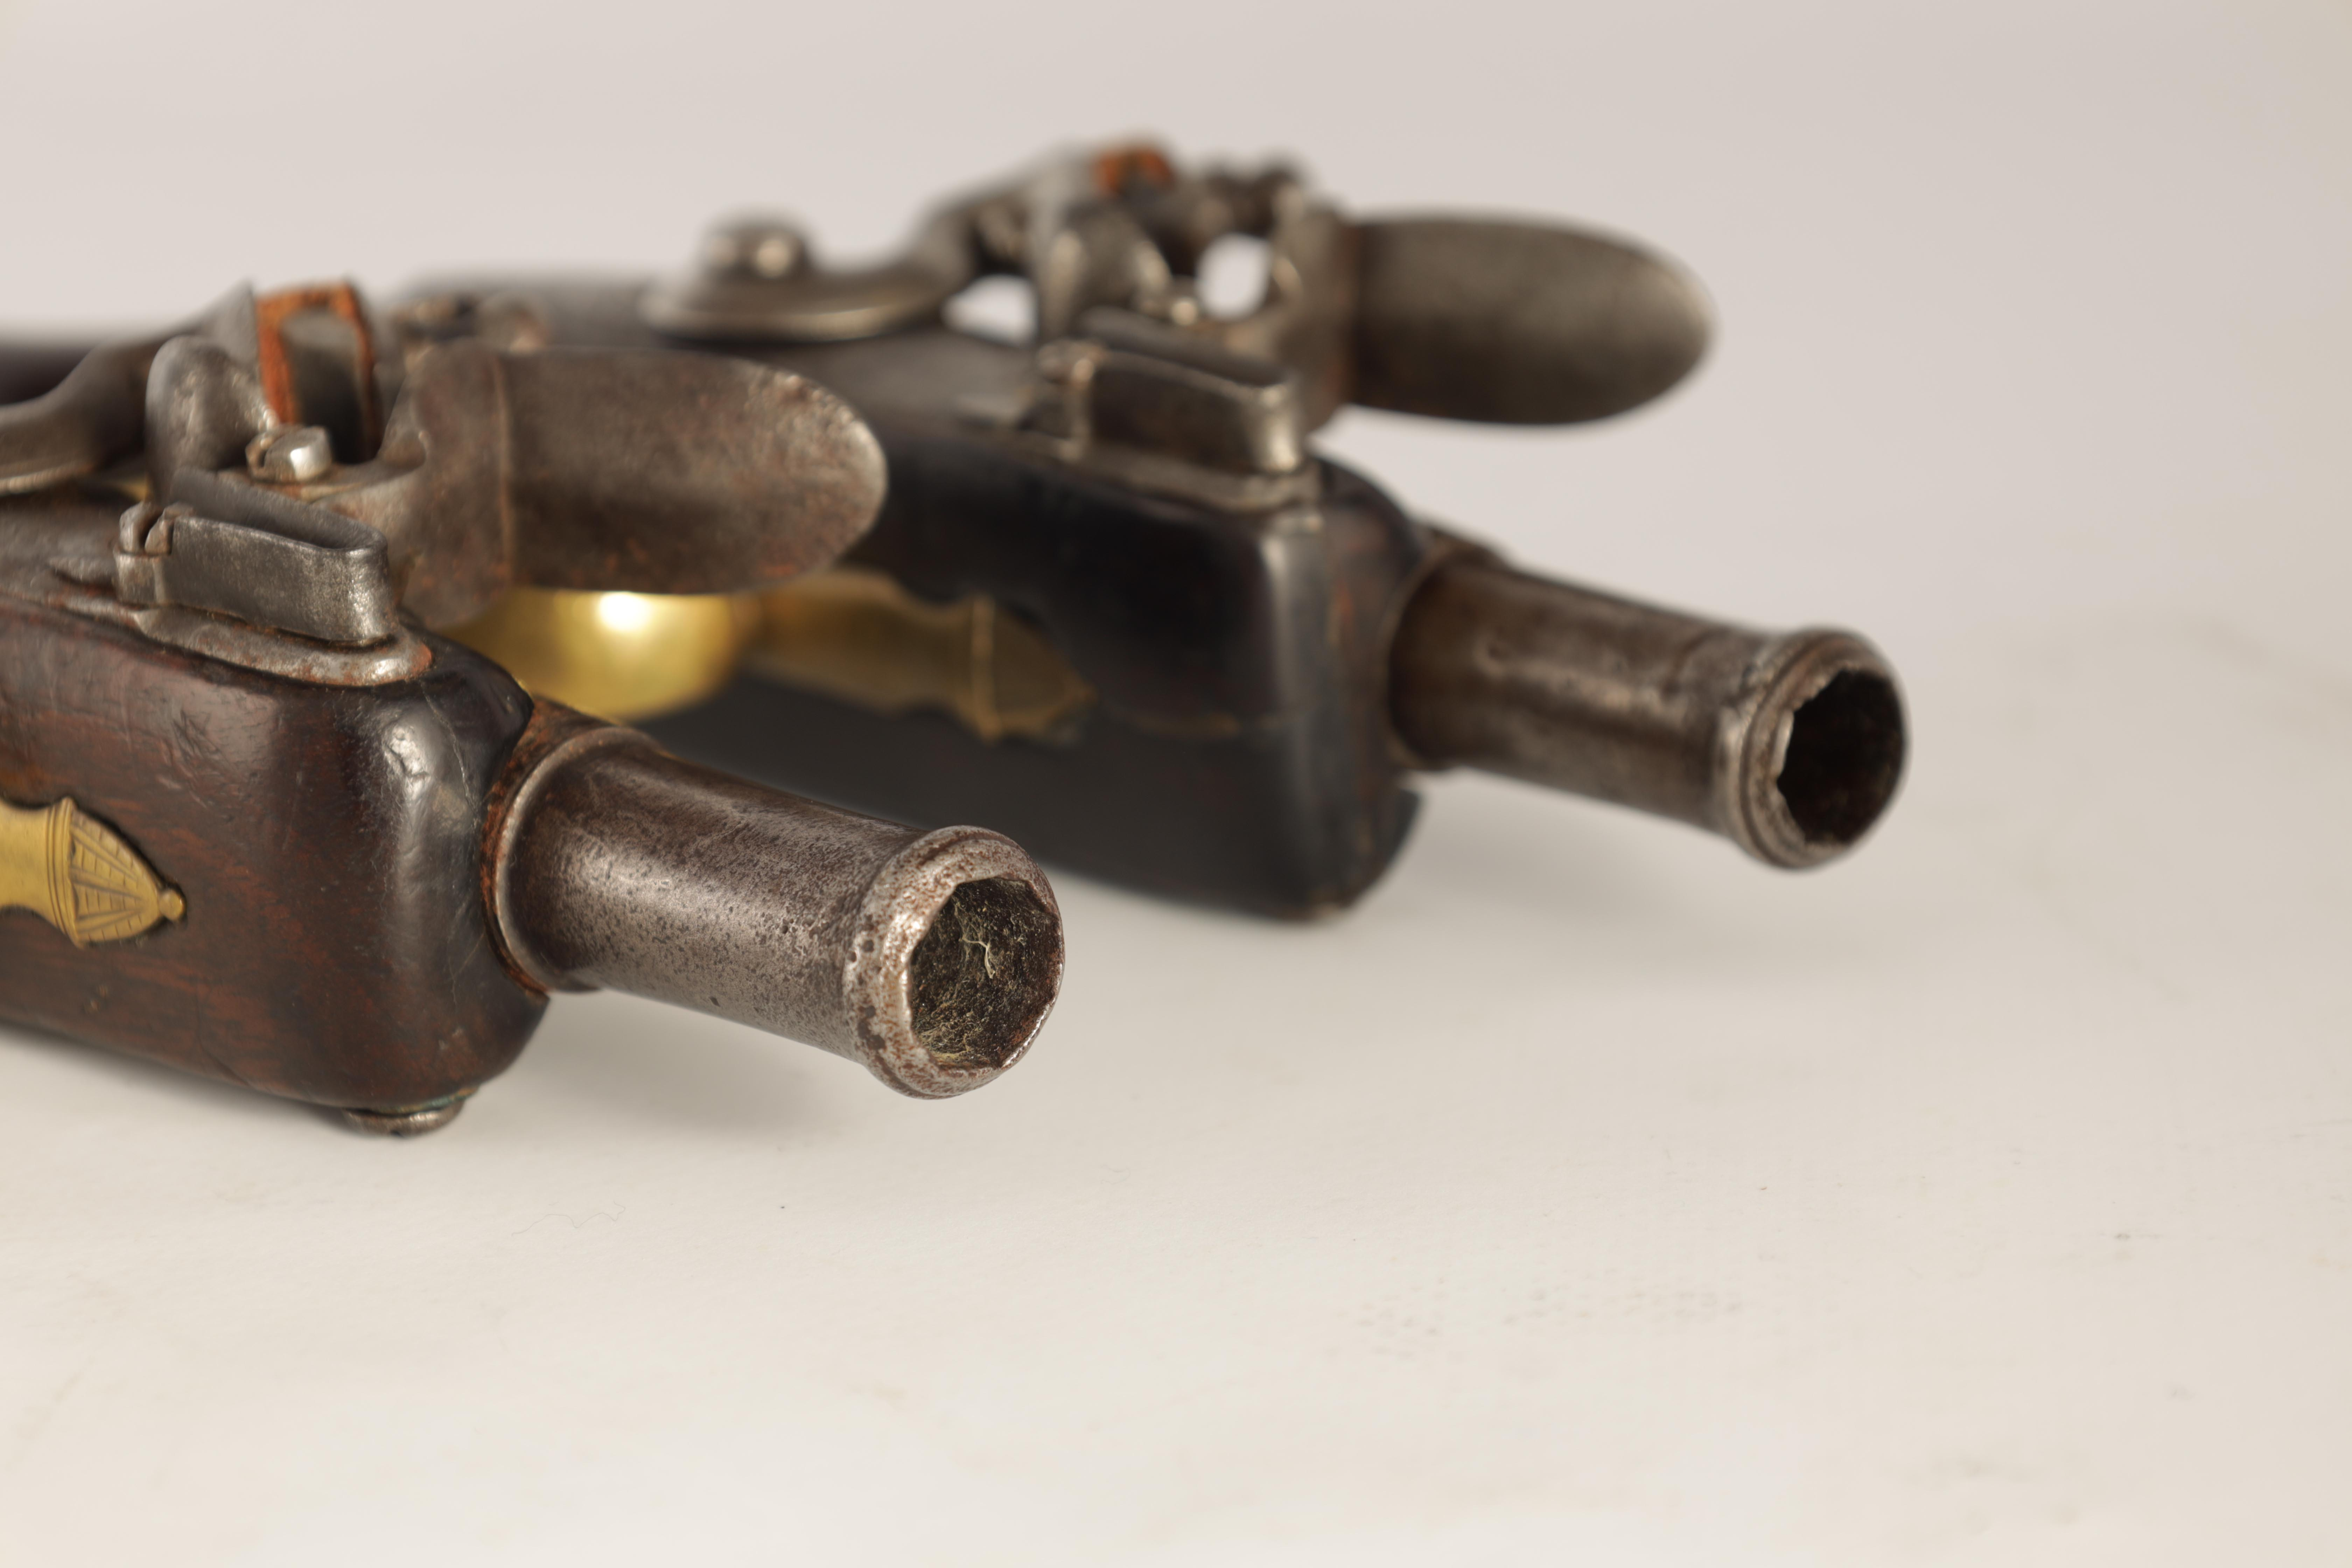 T. JONES. A PAIR OF EARLY 18TH CENTURY FLINTLOCK POCKET PISTOLS with turn-off cannon barrel, - Image 8 of 14